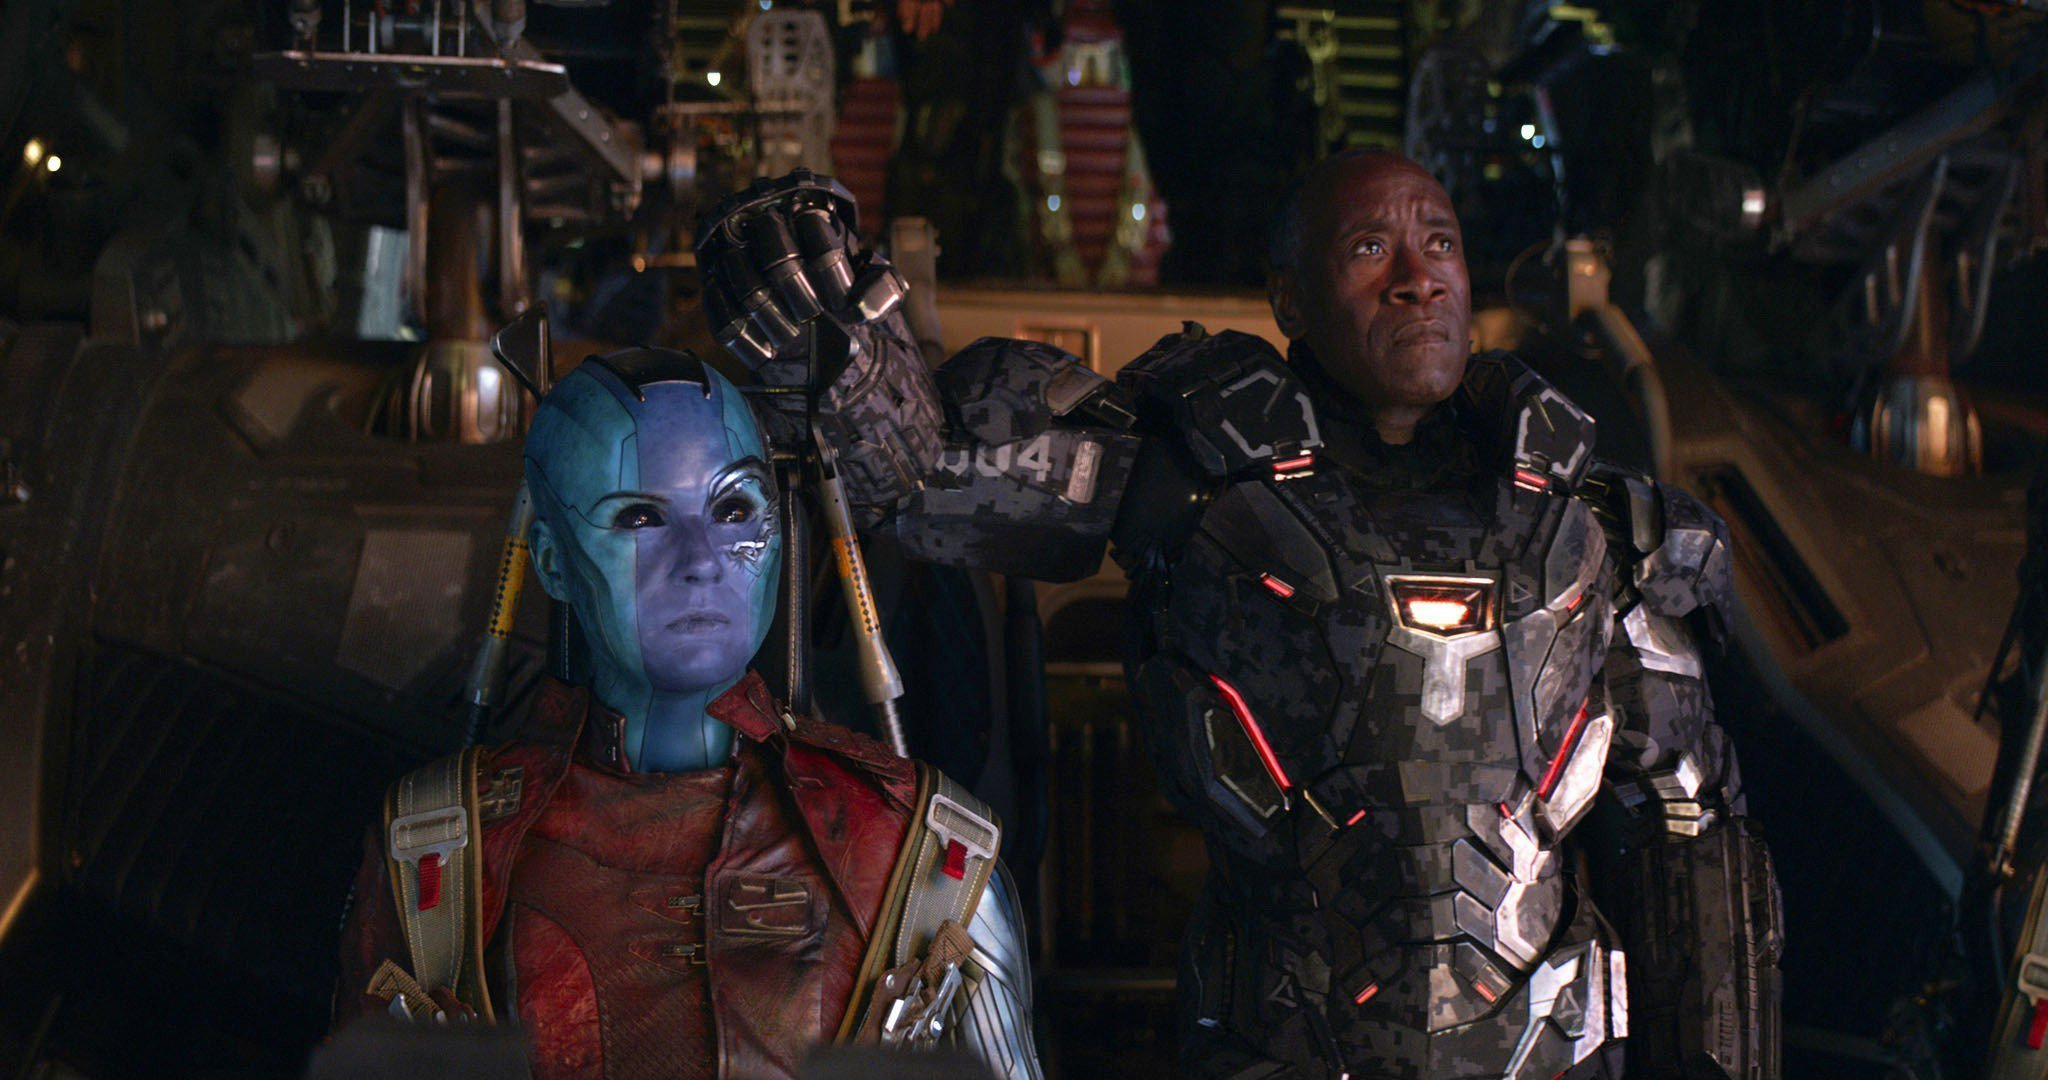 Photo du film Avengers: Endgame avec Nebula et War Machine